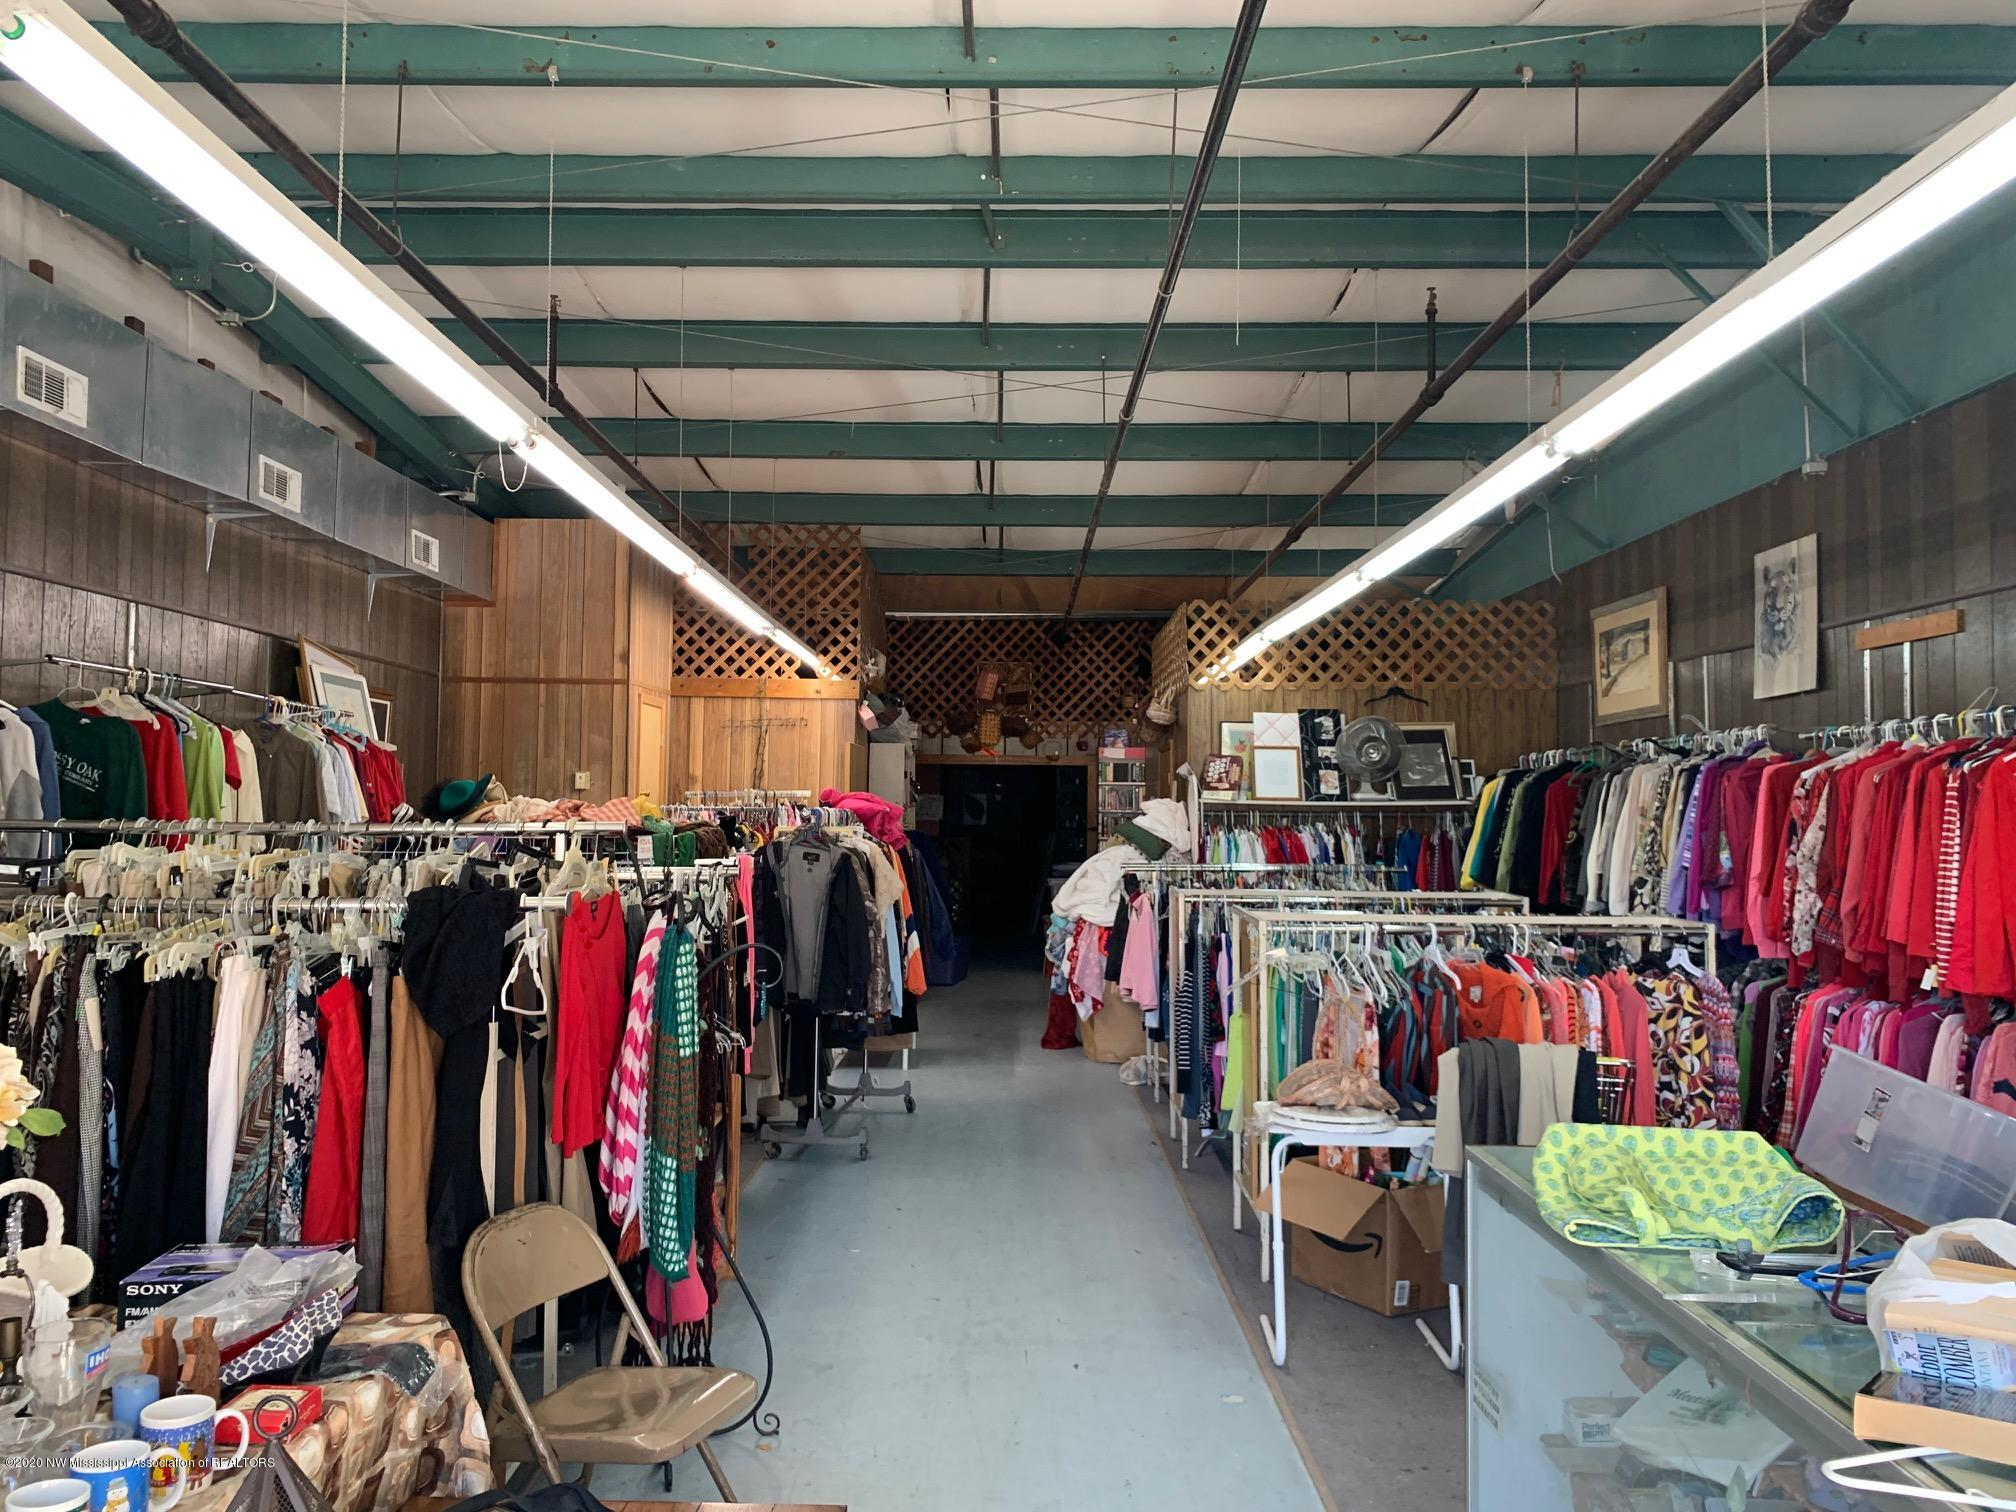 110-120 ROBINSON STREET, Tate, Mississippi 38668, ,Commercial,For Sale,ROBINSON STREET,332439